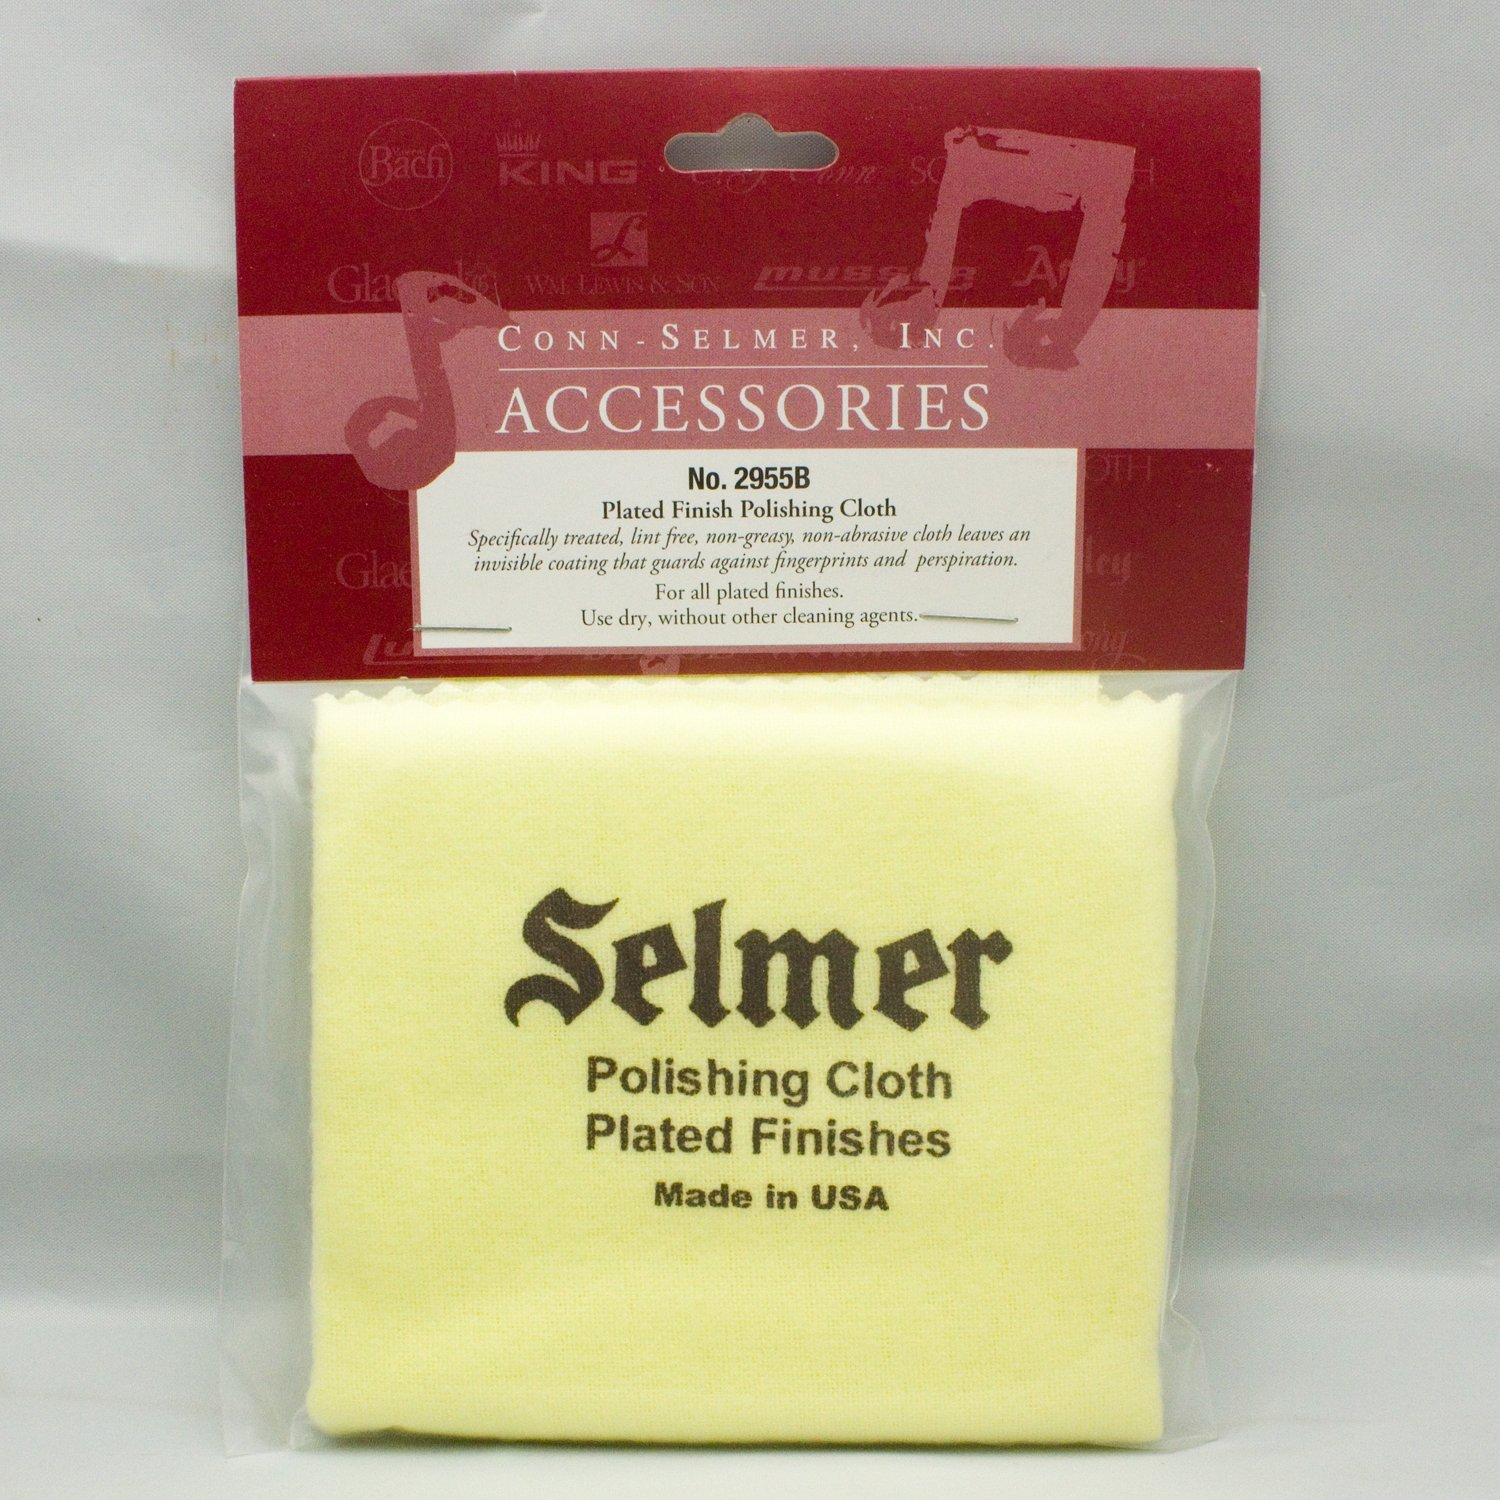 Selmer Polishing Cloth 2955 for Plated Finishes